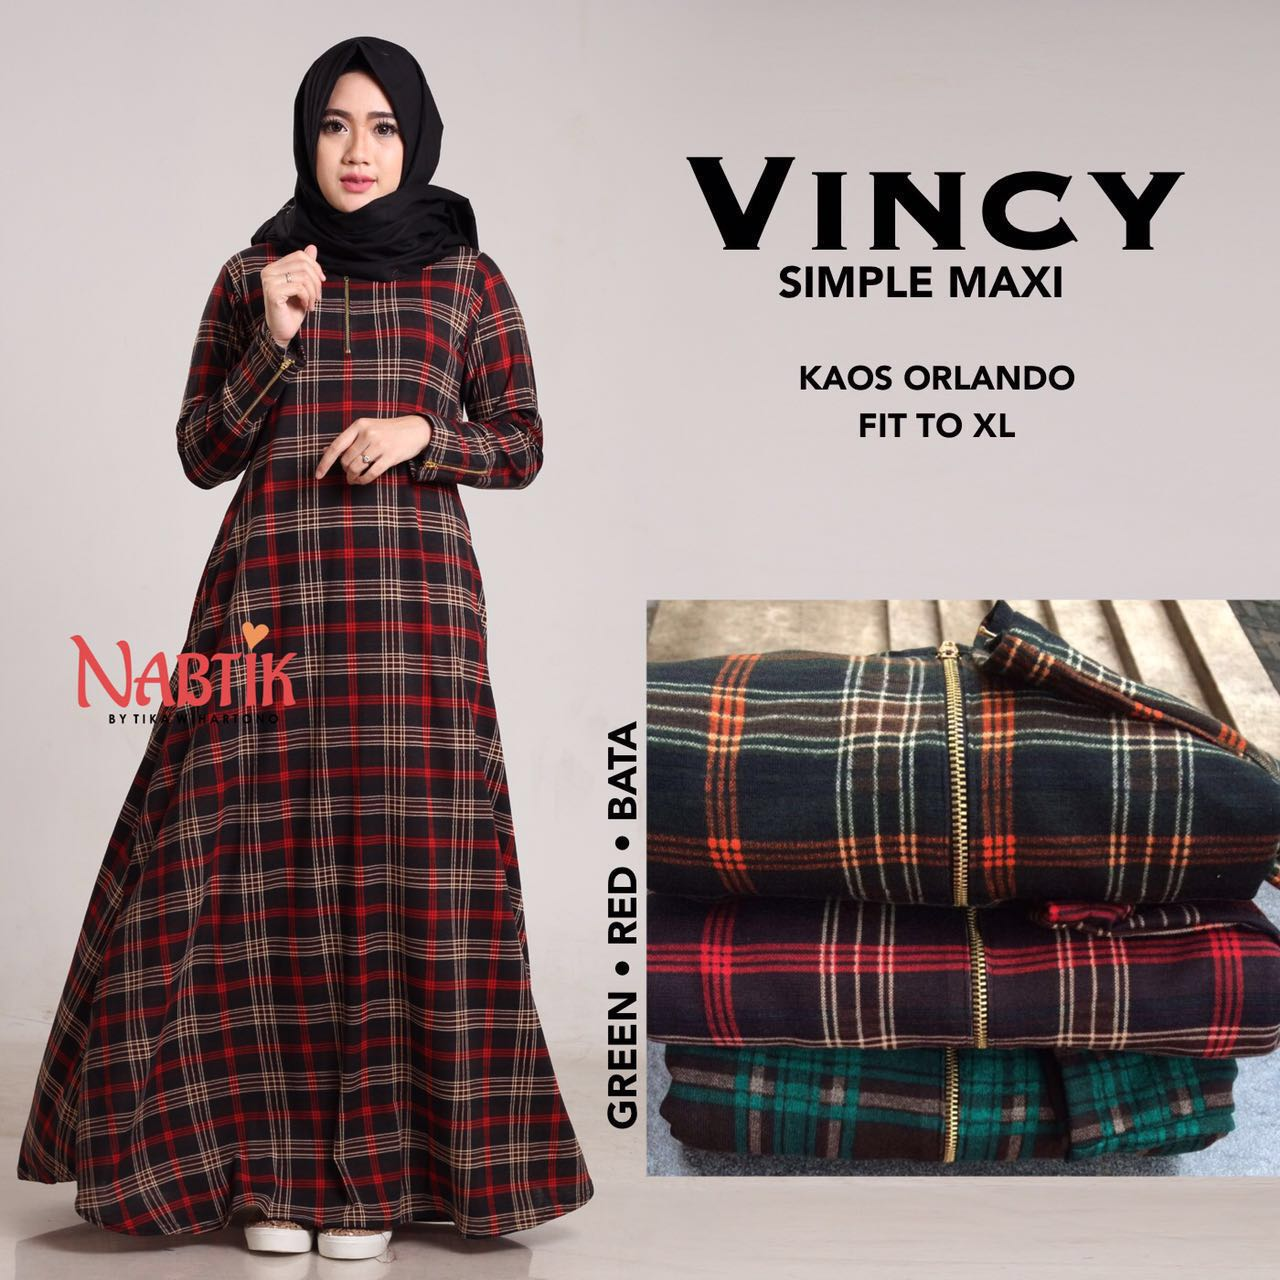 Vincy Simple Maxi By Nabtik Butik Destira Jogja